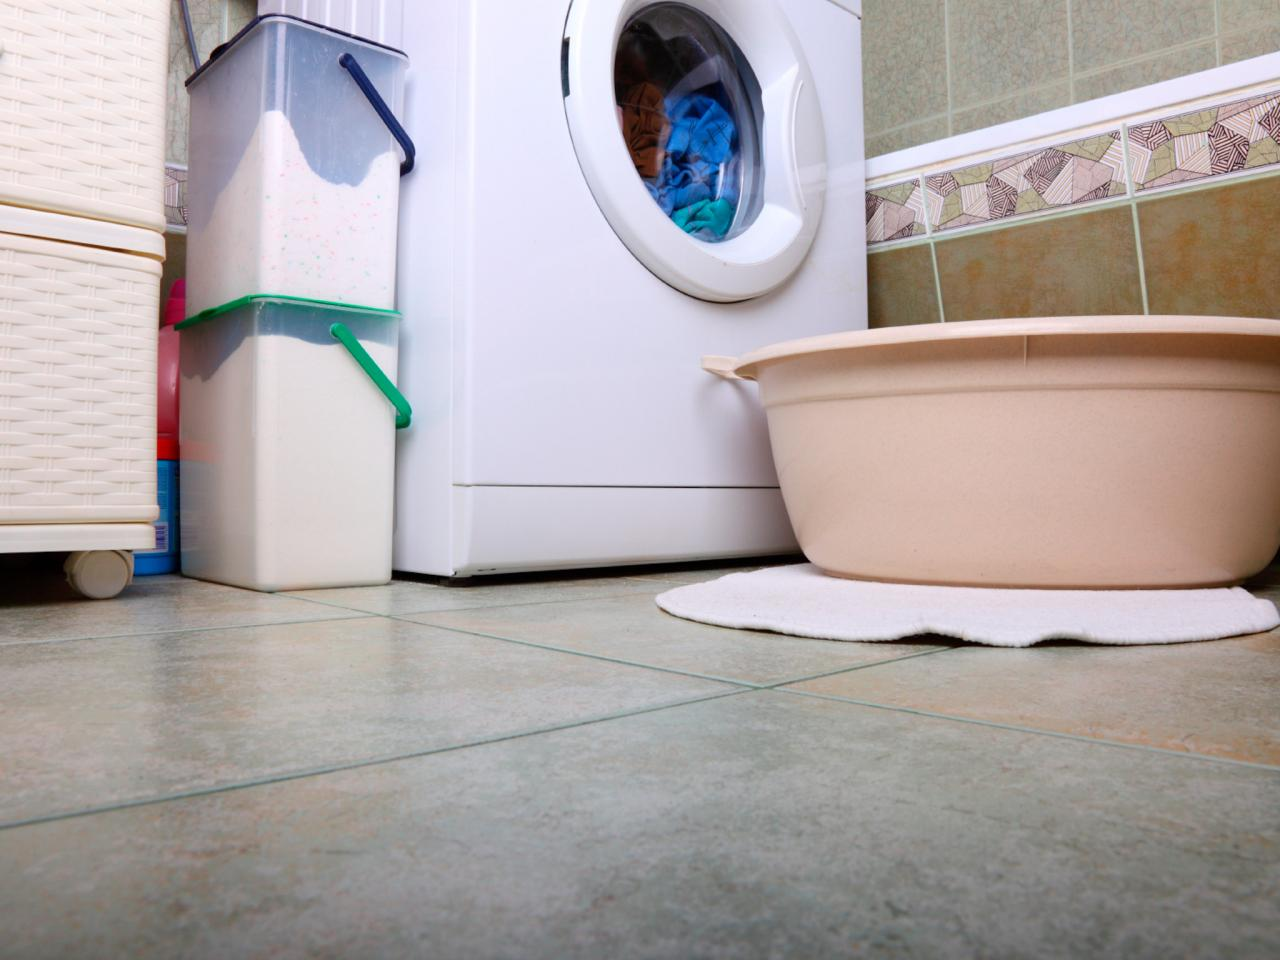 How to clean vinyl floors diy towels in washing machine cloths dailygadgetfo Image collections